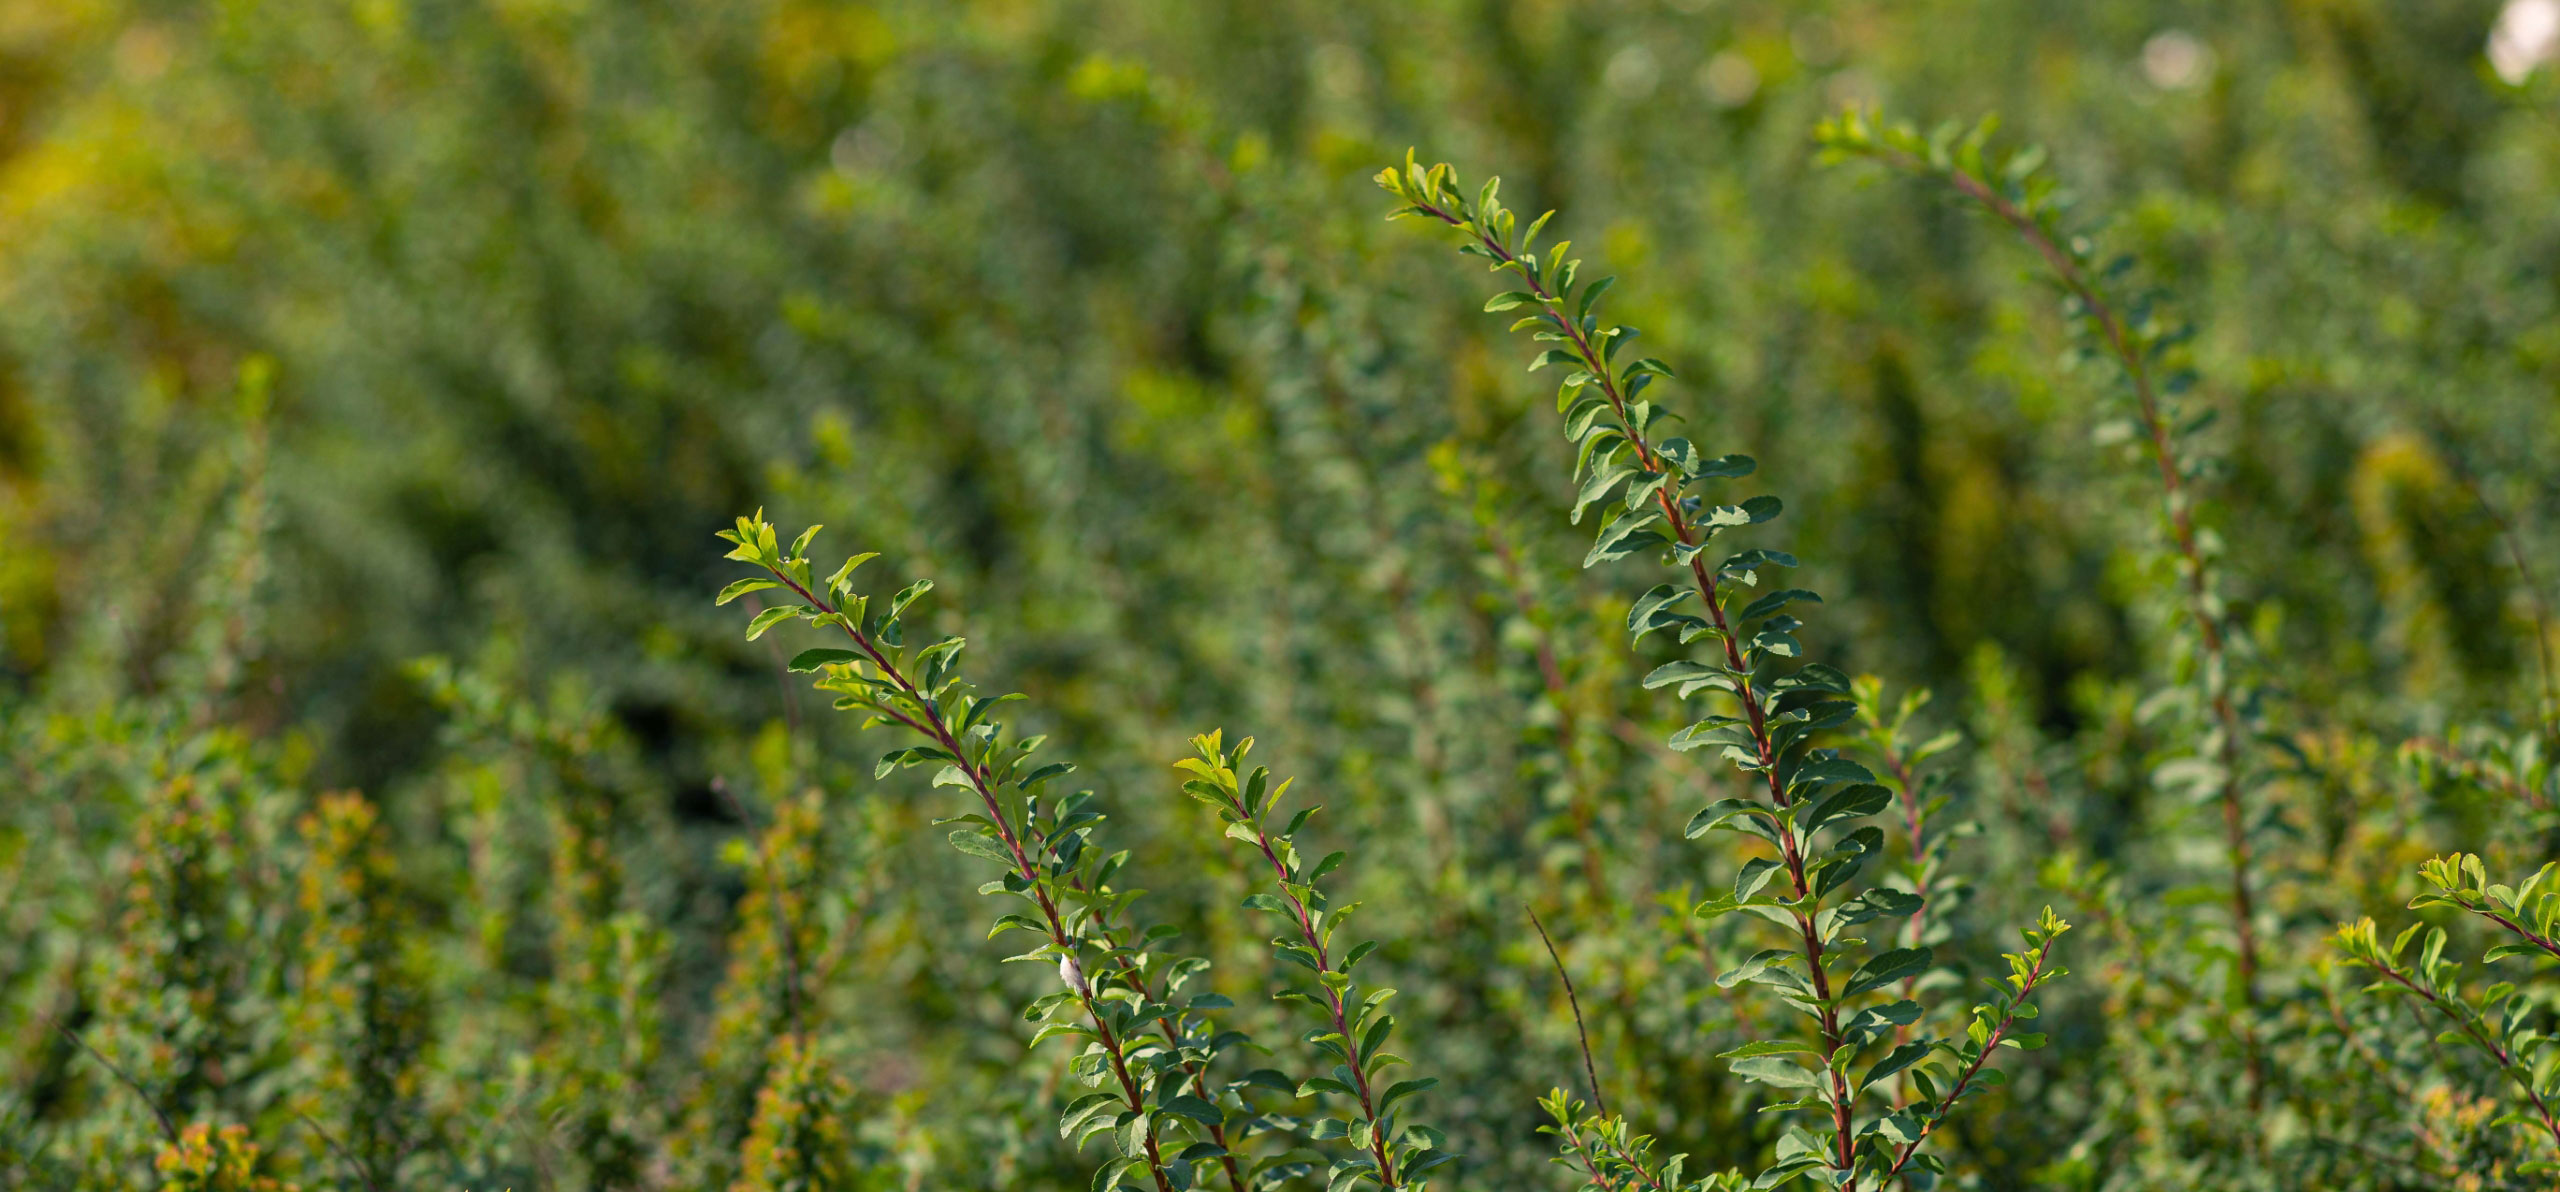 Learn how Gomaterials provide wholesale plant nursery supplies.